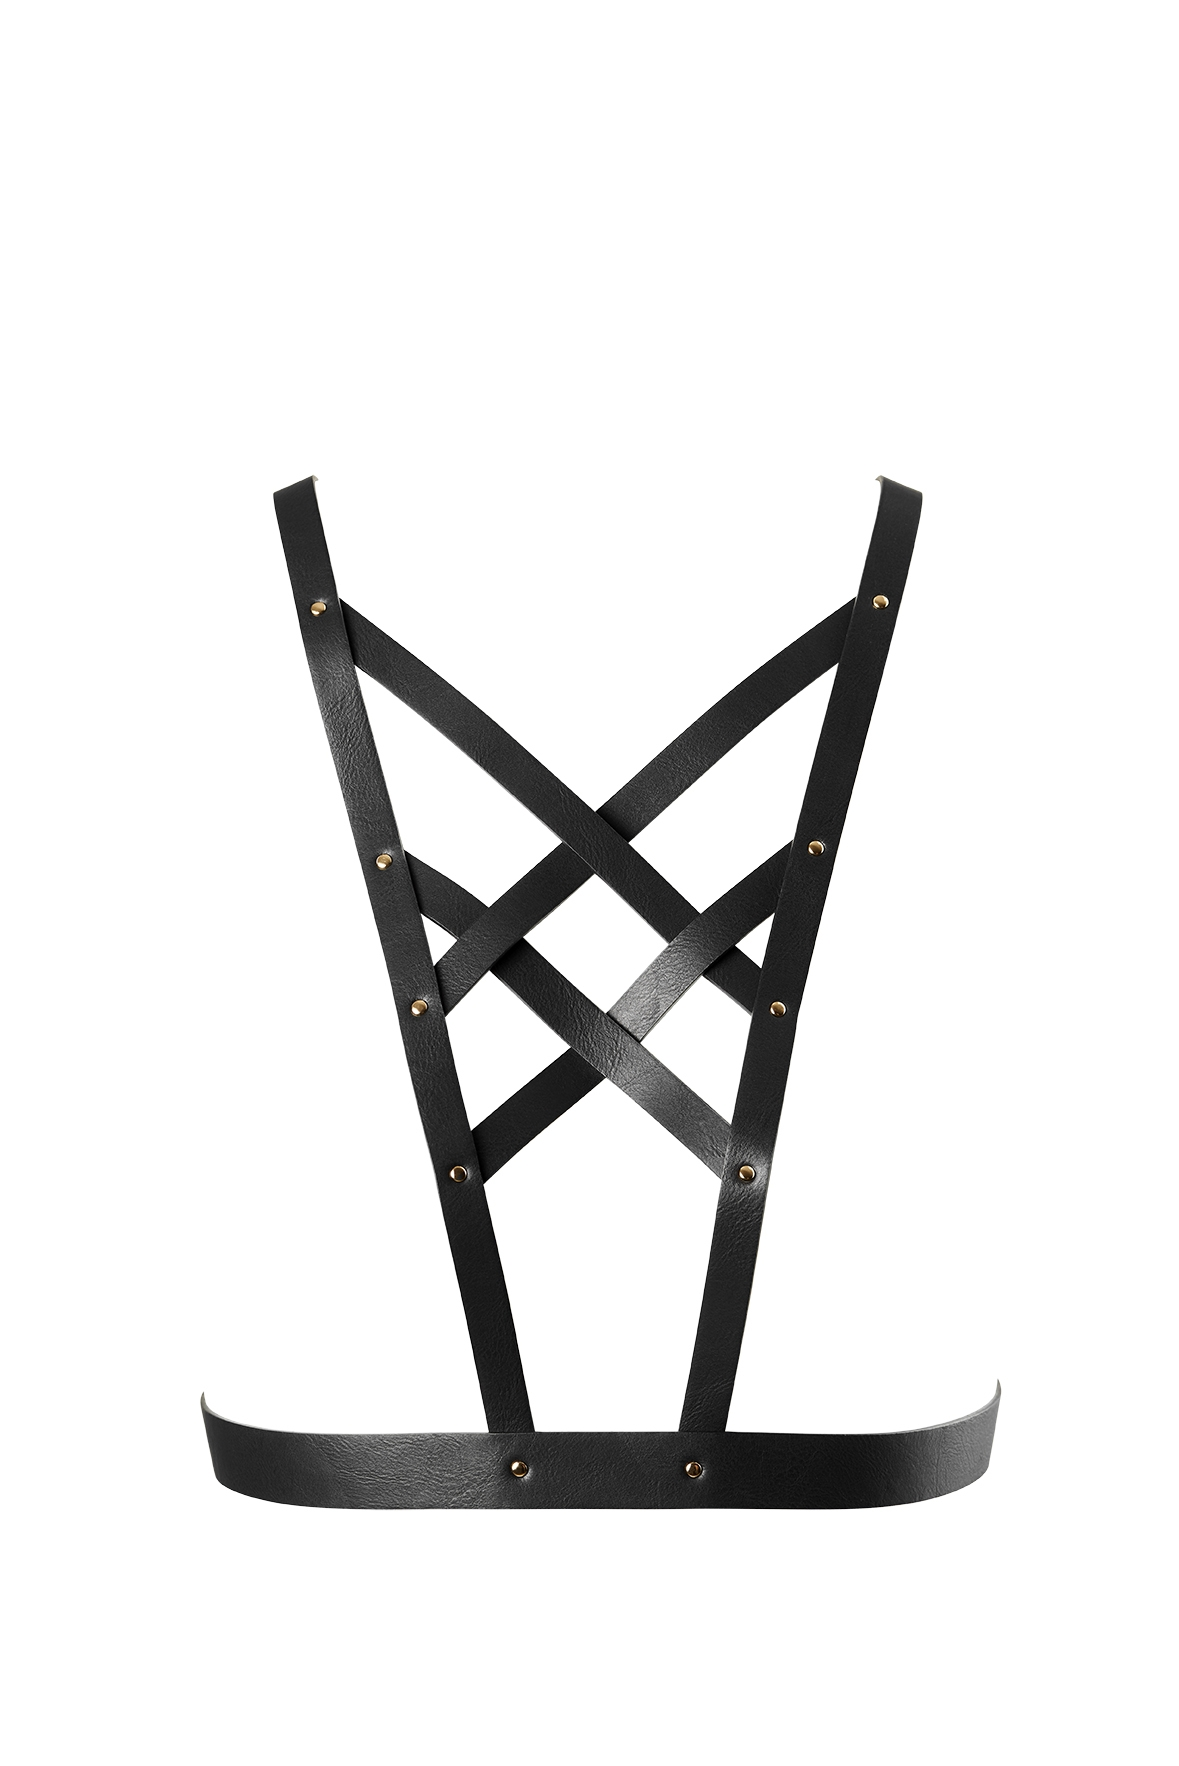 Maze Cross Cleavage Harness - Black